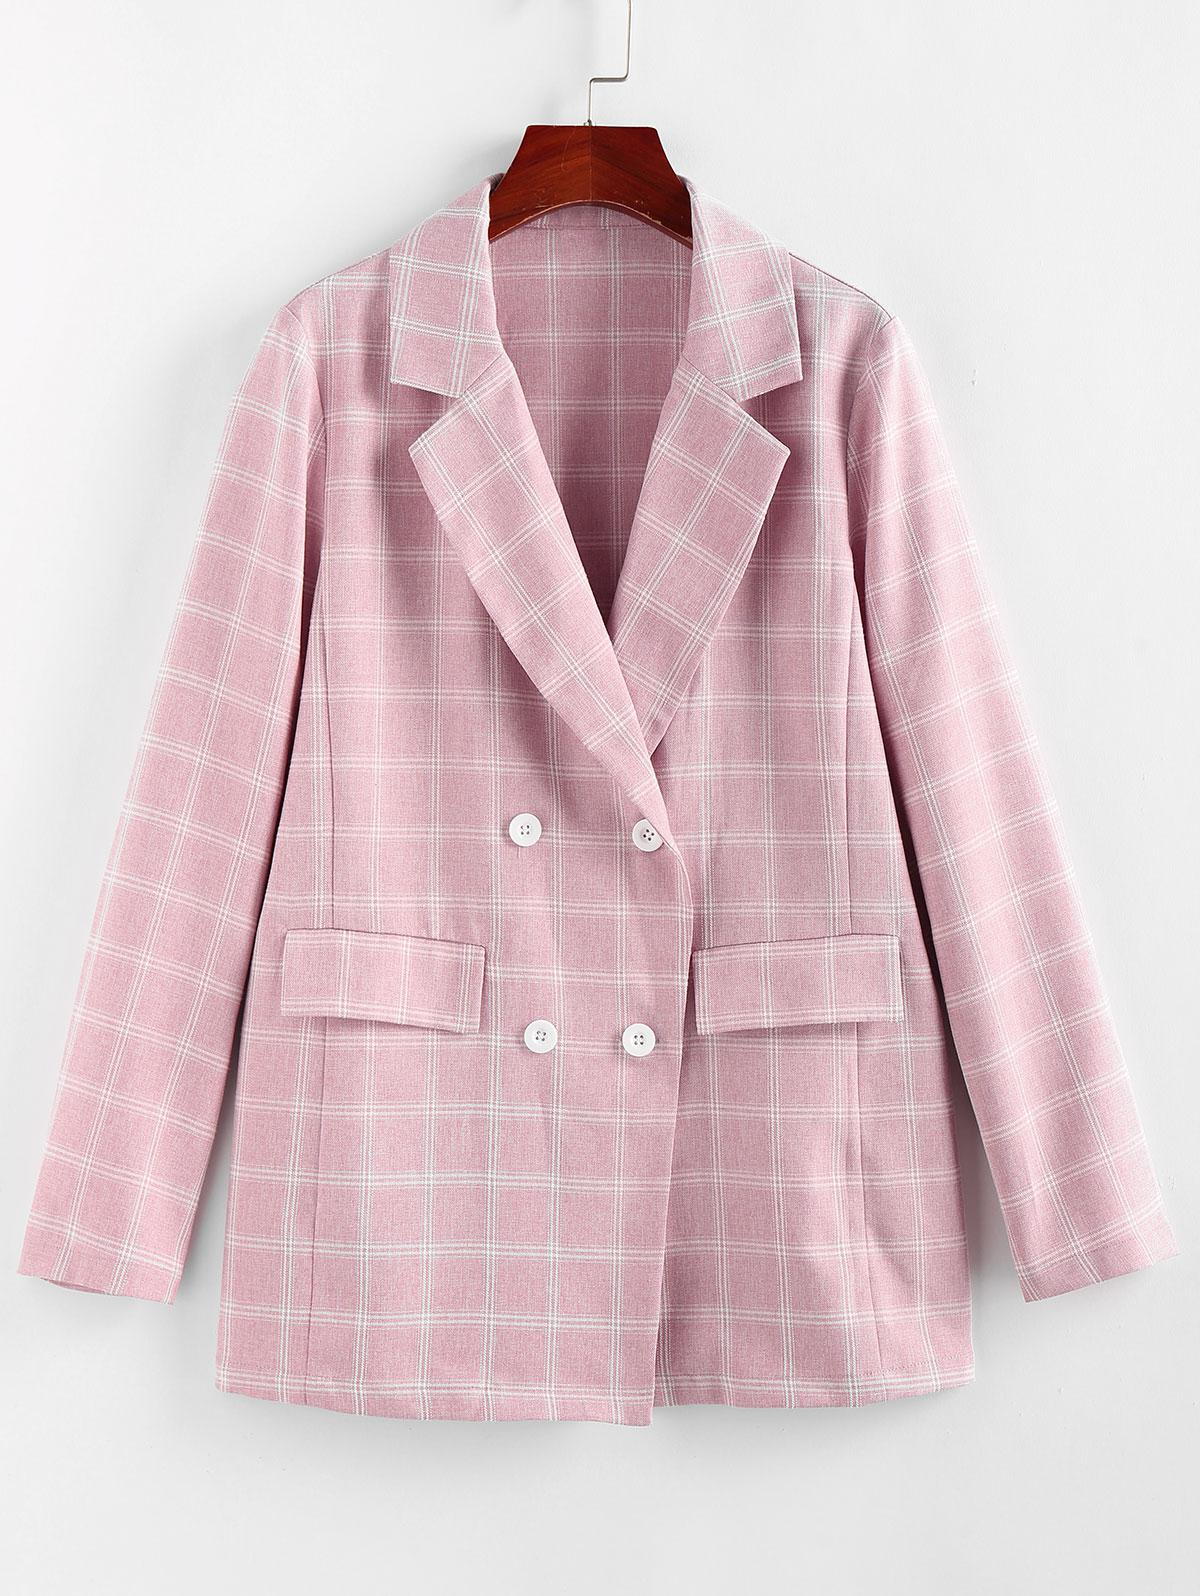 ZAFUL Lapel Checked Double Breasted Blazer